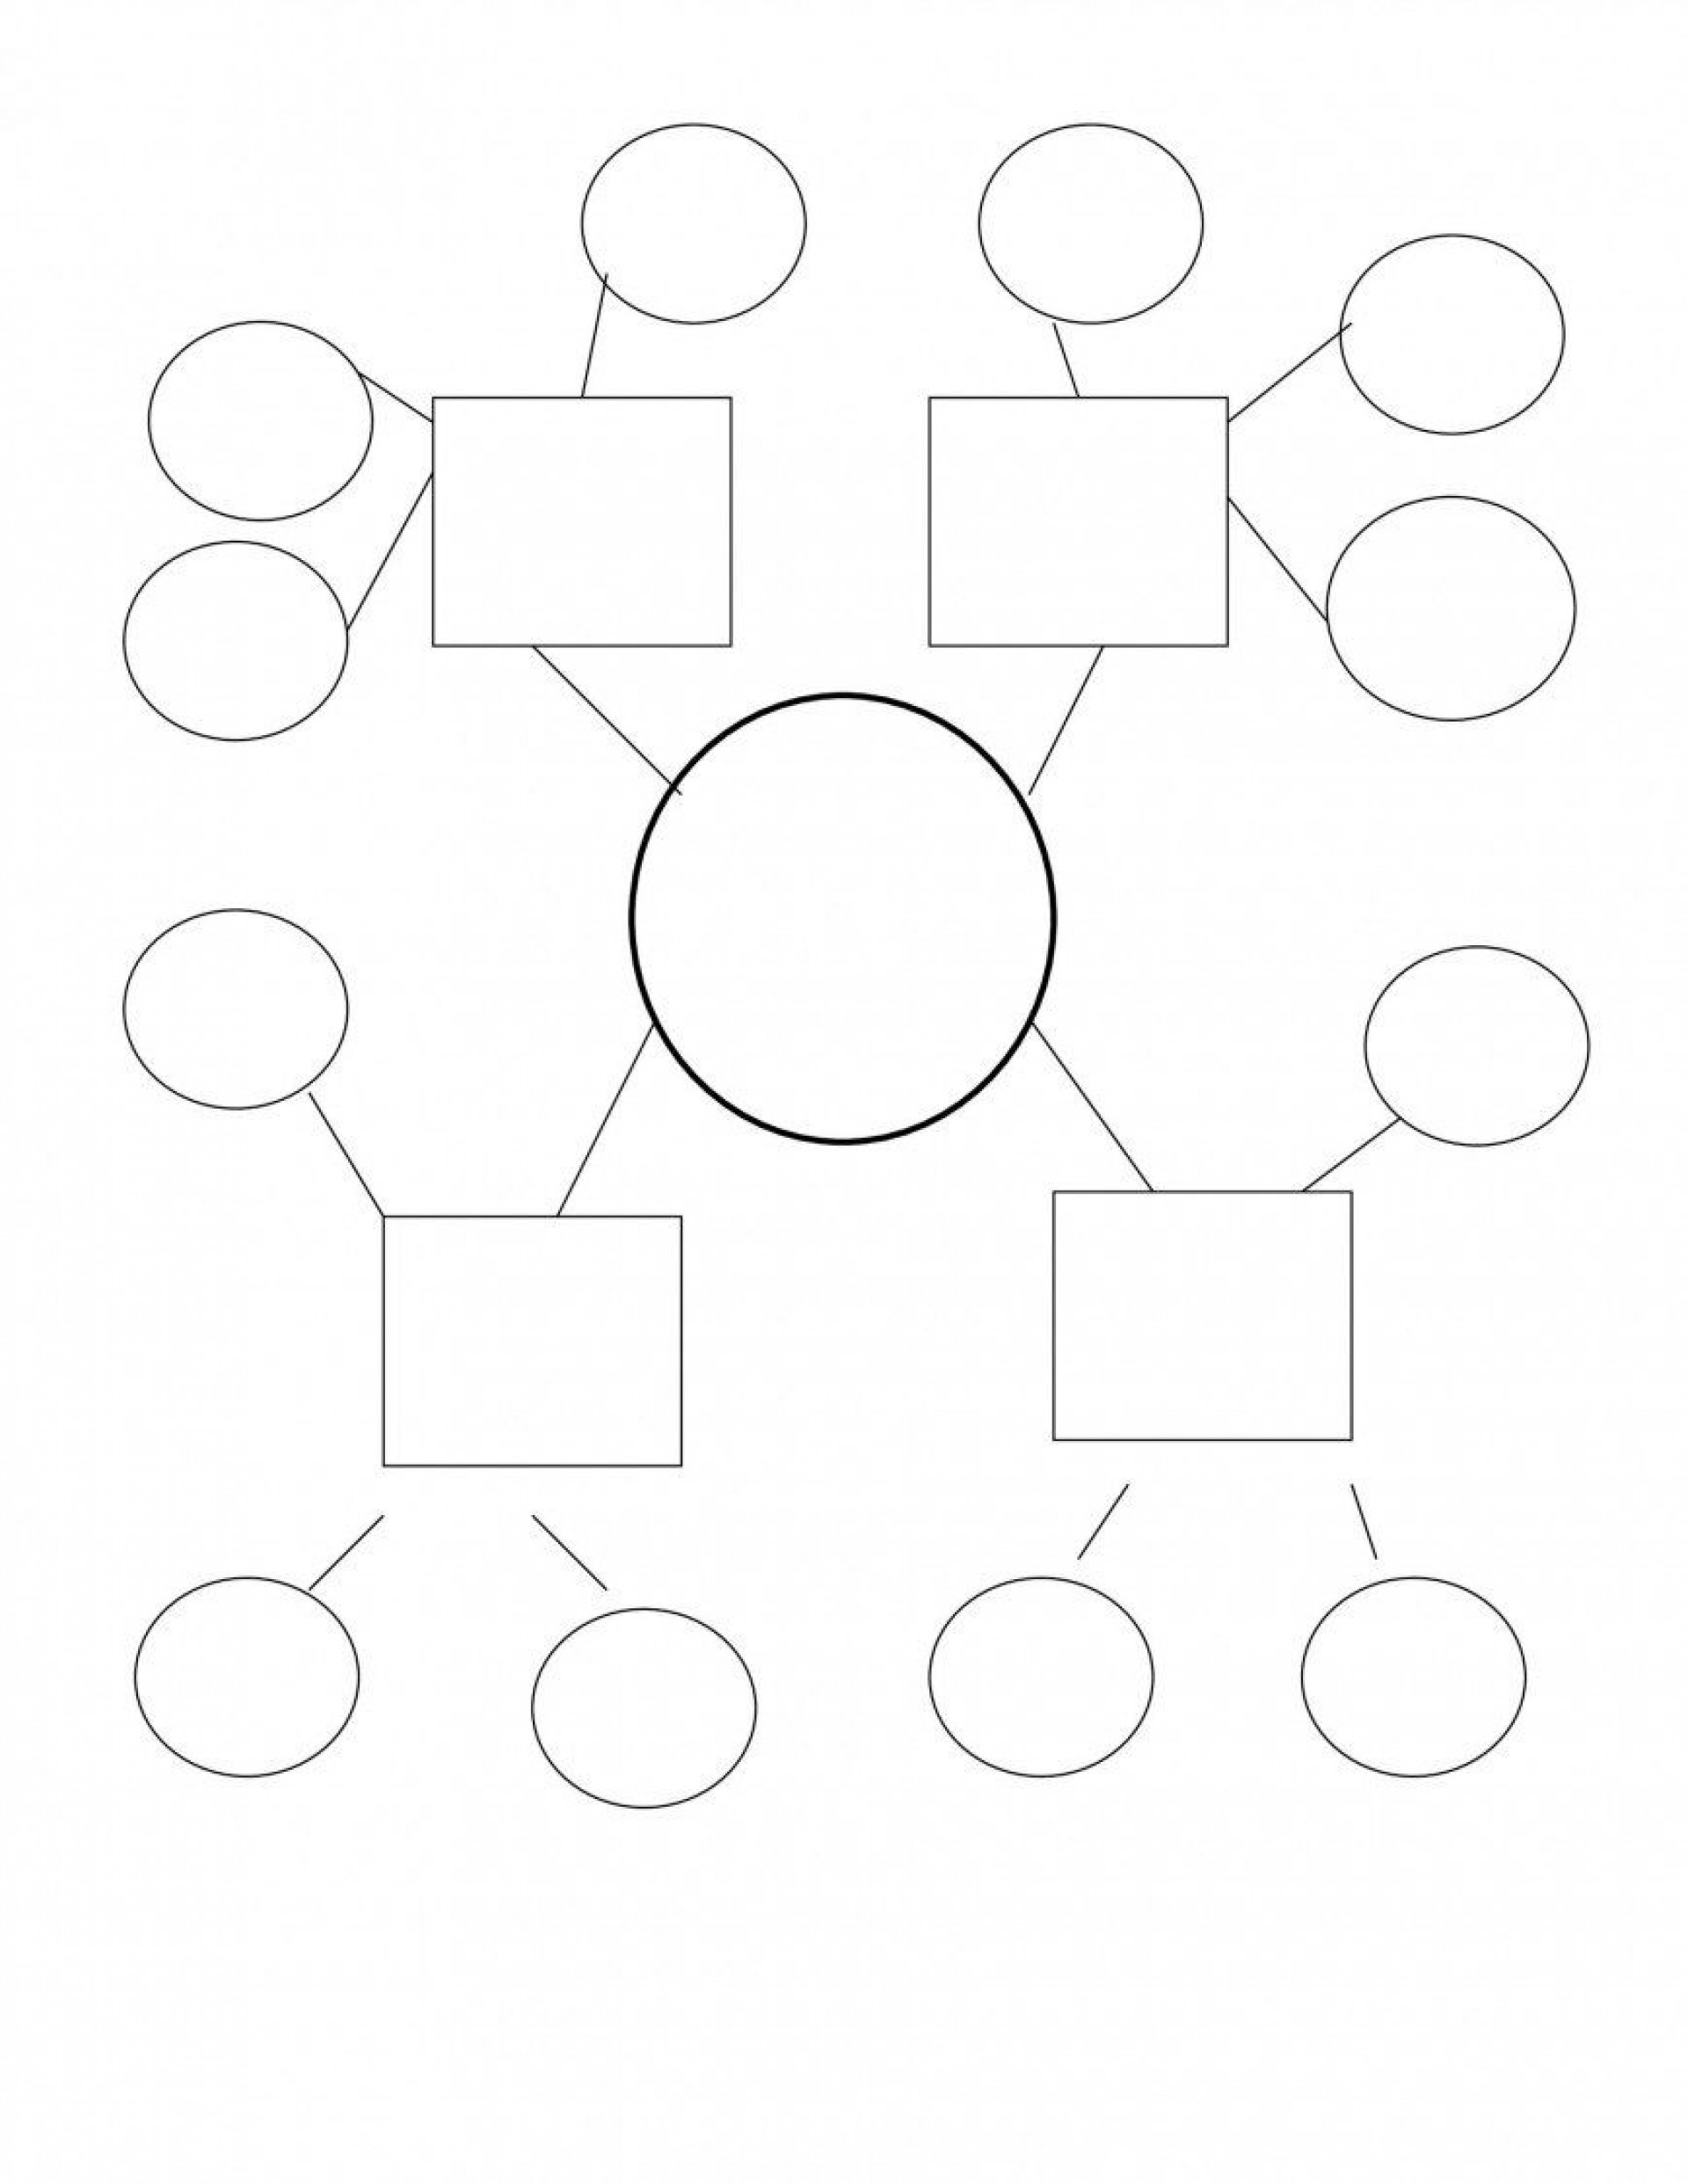 009 Awesome Free Blank Concept Map Template Design  Printable Nursing1920